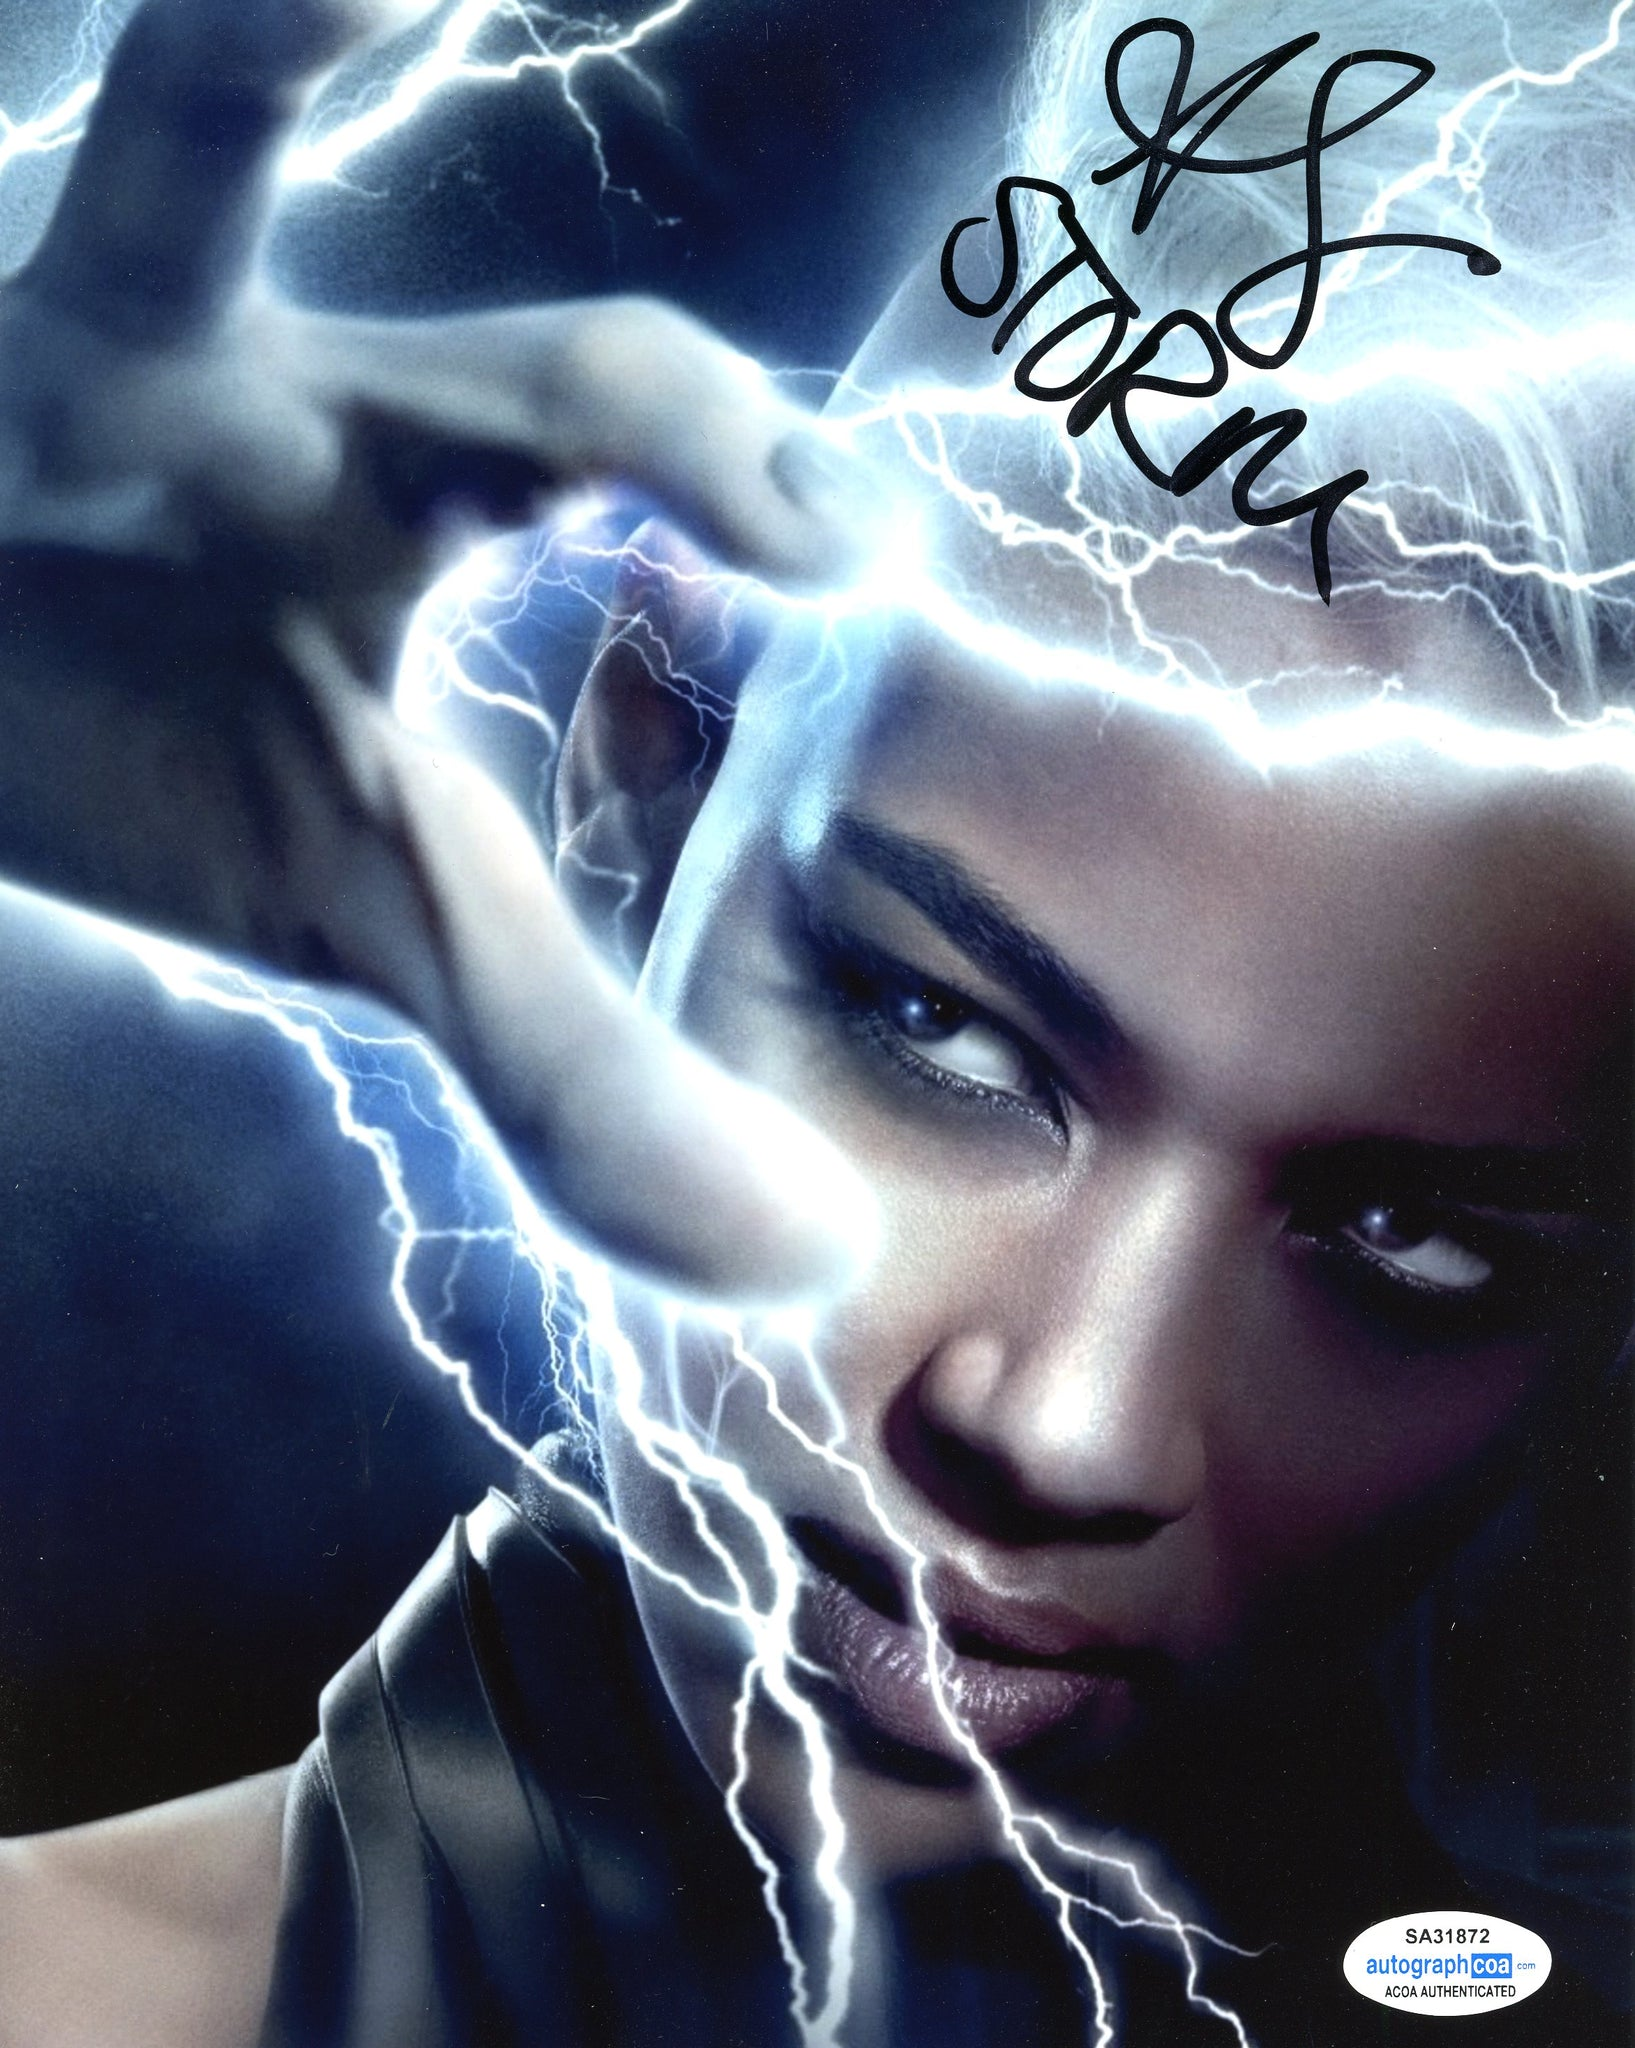 Alexandra Shipp X-Men The Storm Signed Autograph 8x10 Photo ACoA #5